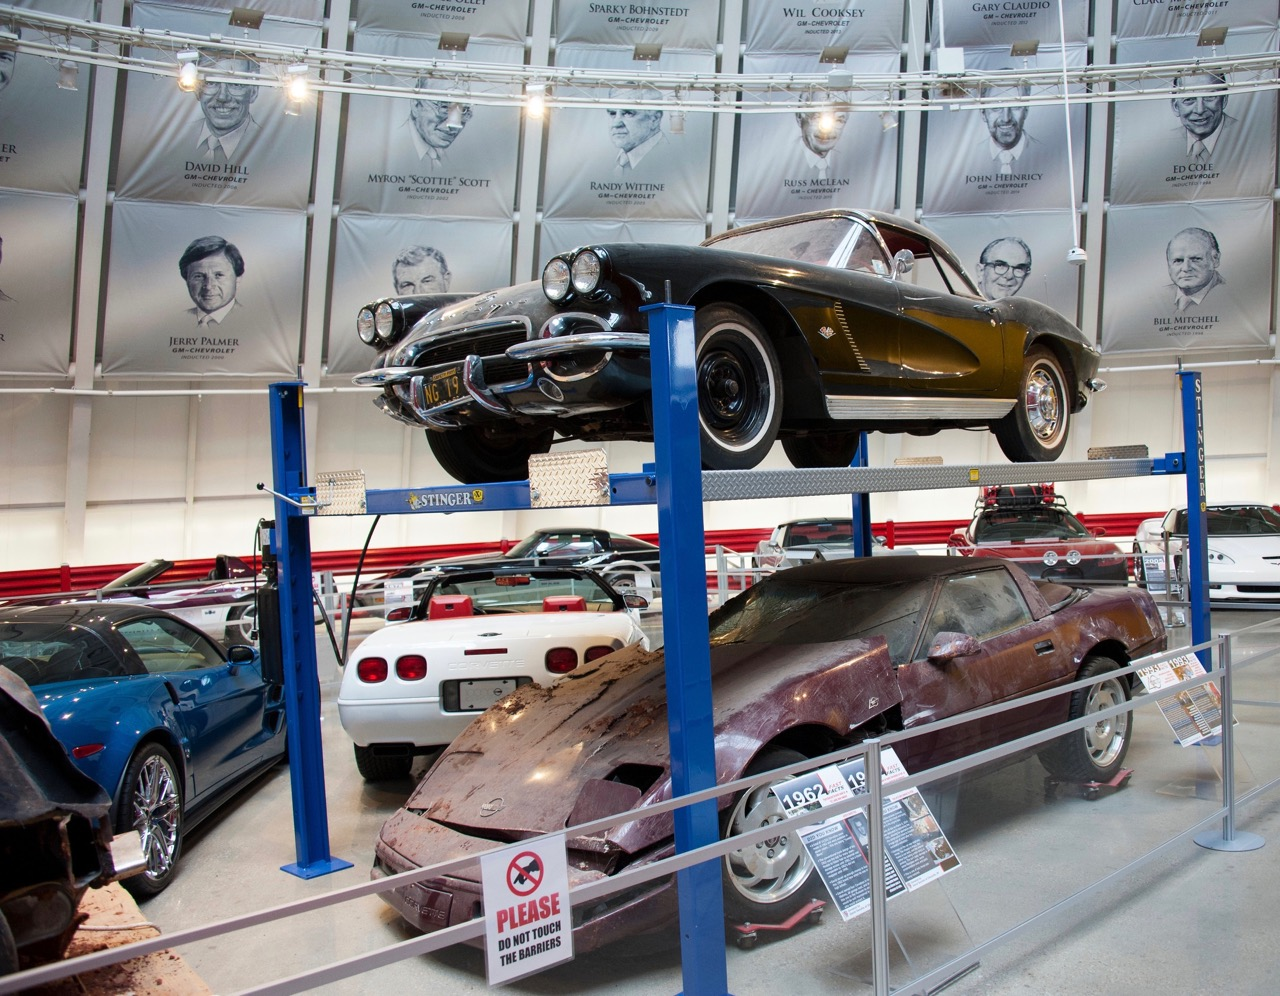 The '62 had been on display in the repaired Skyome